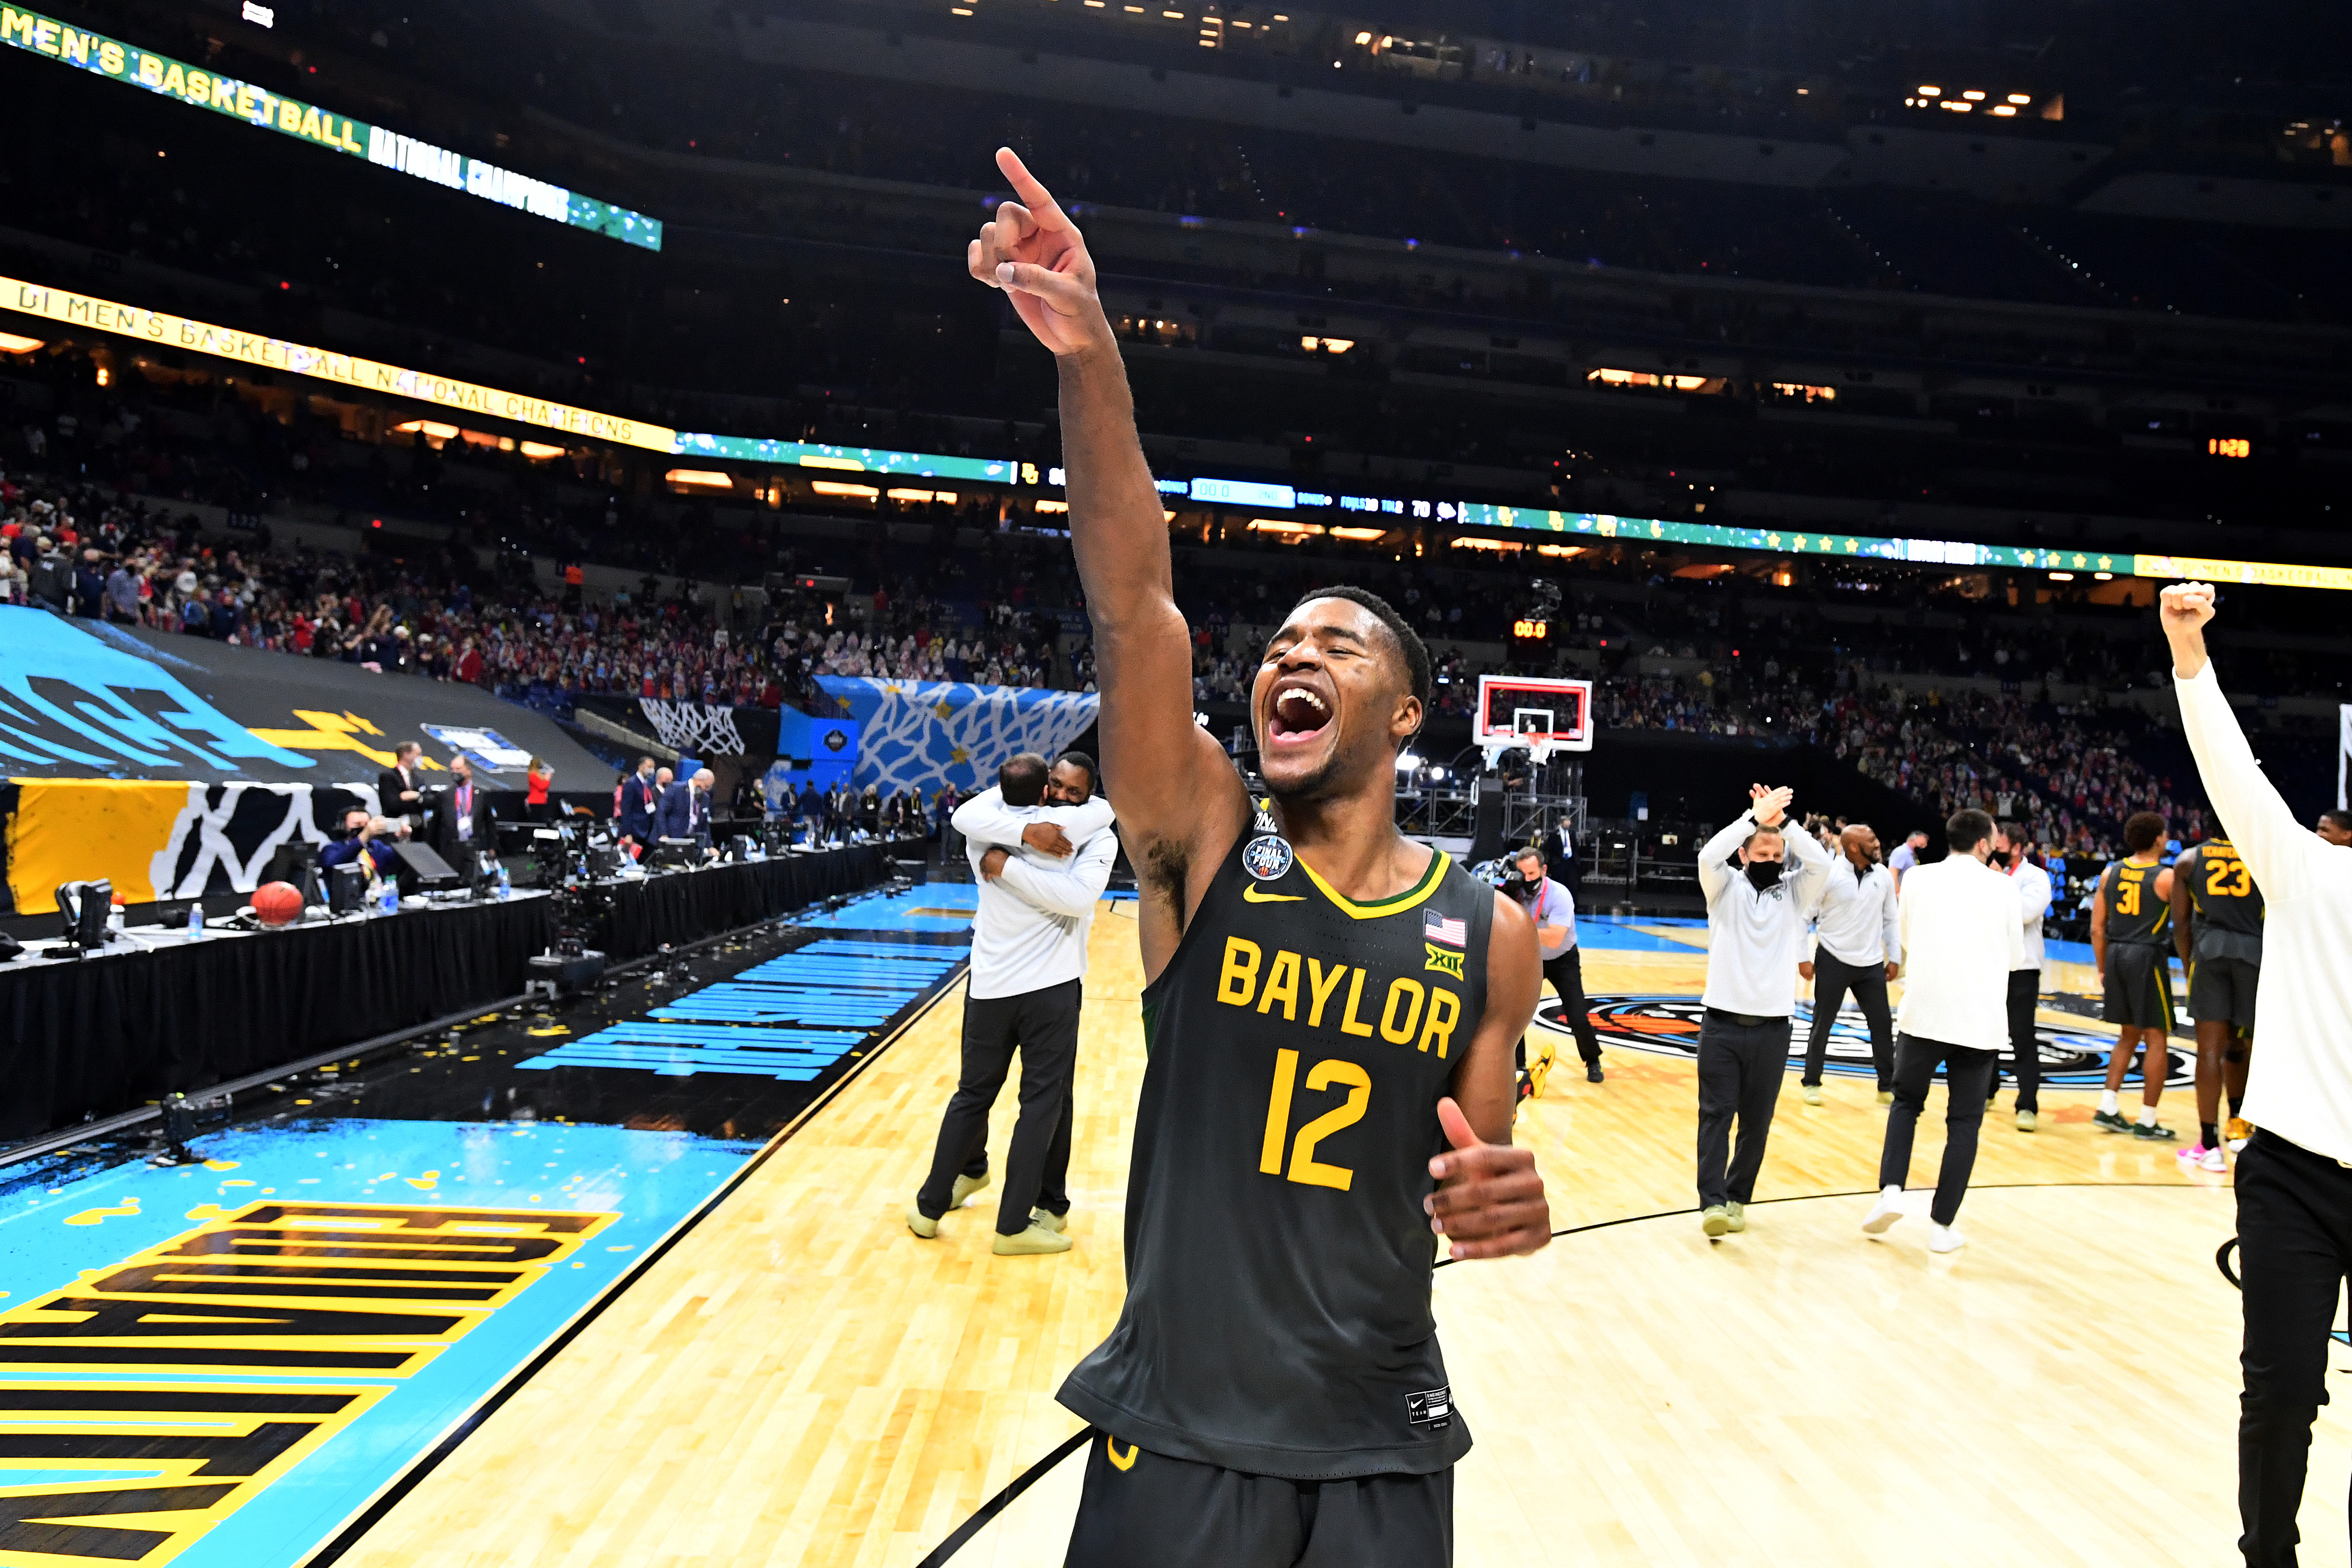 Jared Butler #12 of the Baylor Bears celebrates after defeating the Gonzaga Bulldogs in the National Championship game of the 2021 NCAA Men's Basketball Tournament at Lucas Oil Stadium on April 05, 2021 in Indianapolis, Indiana.